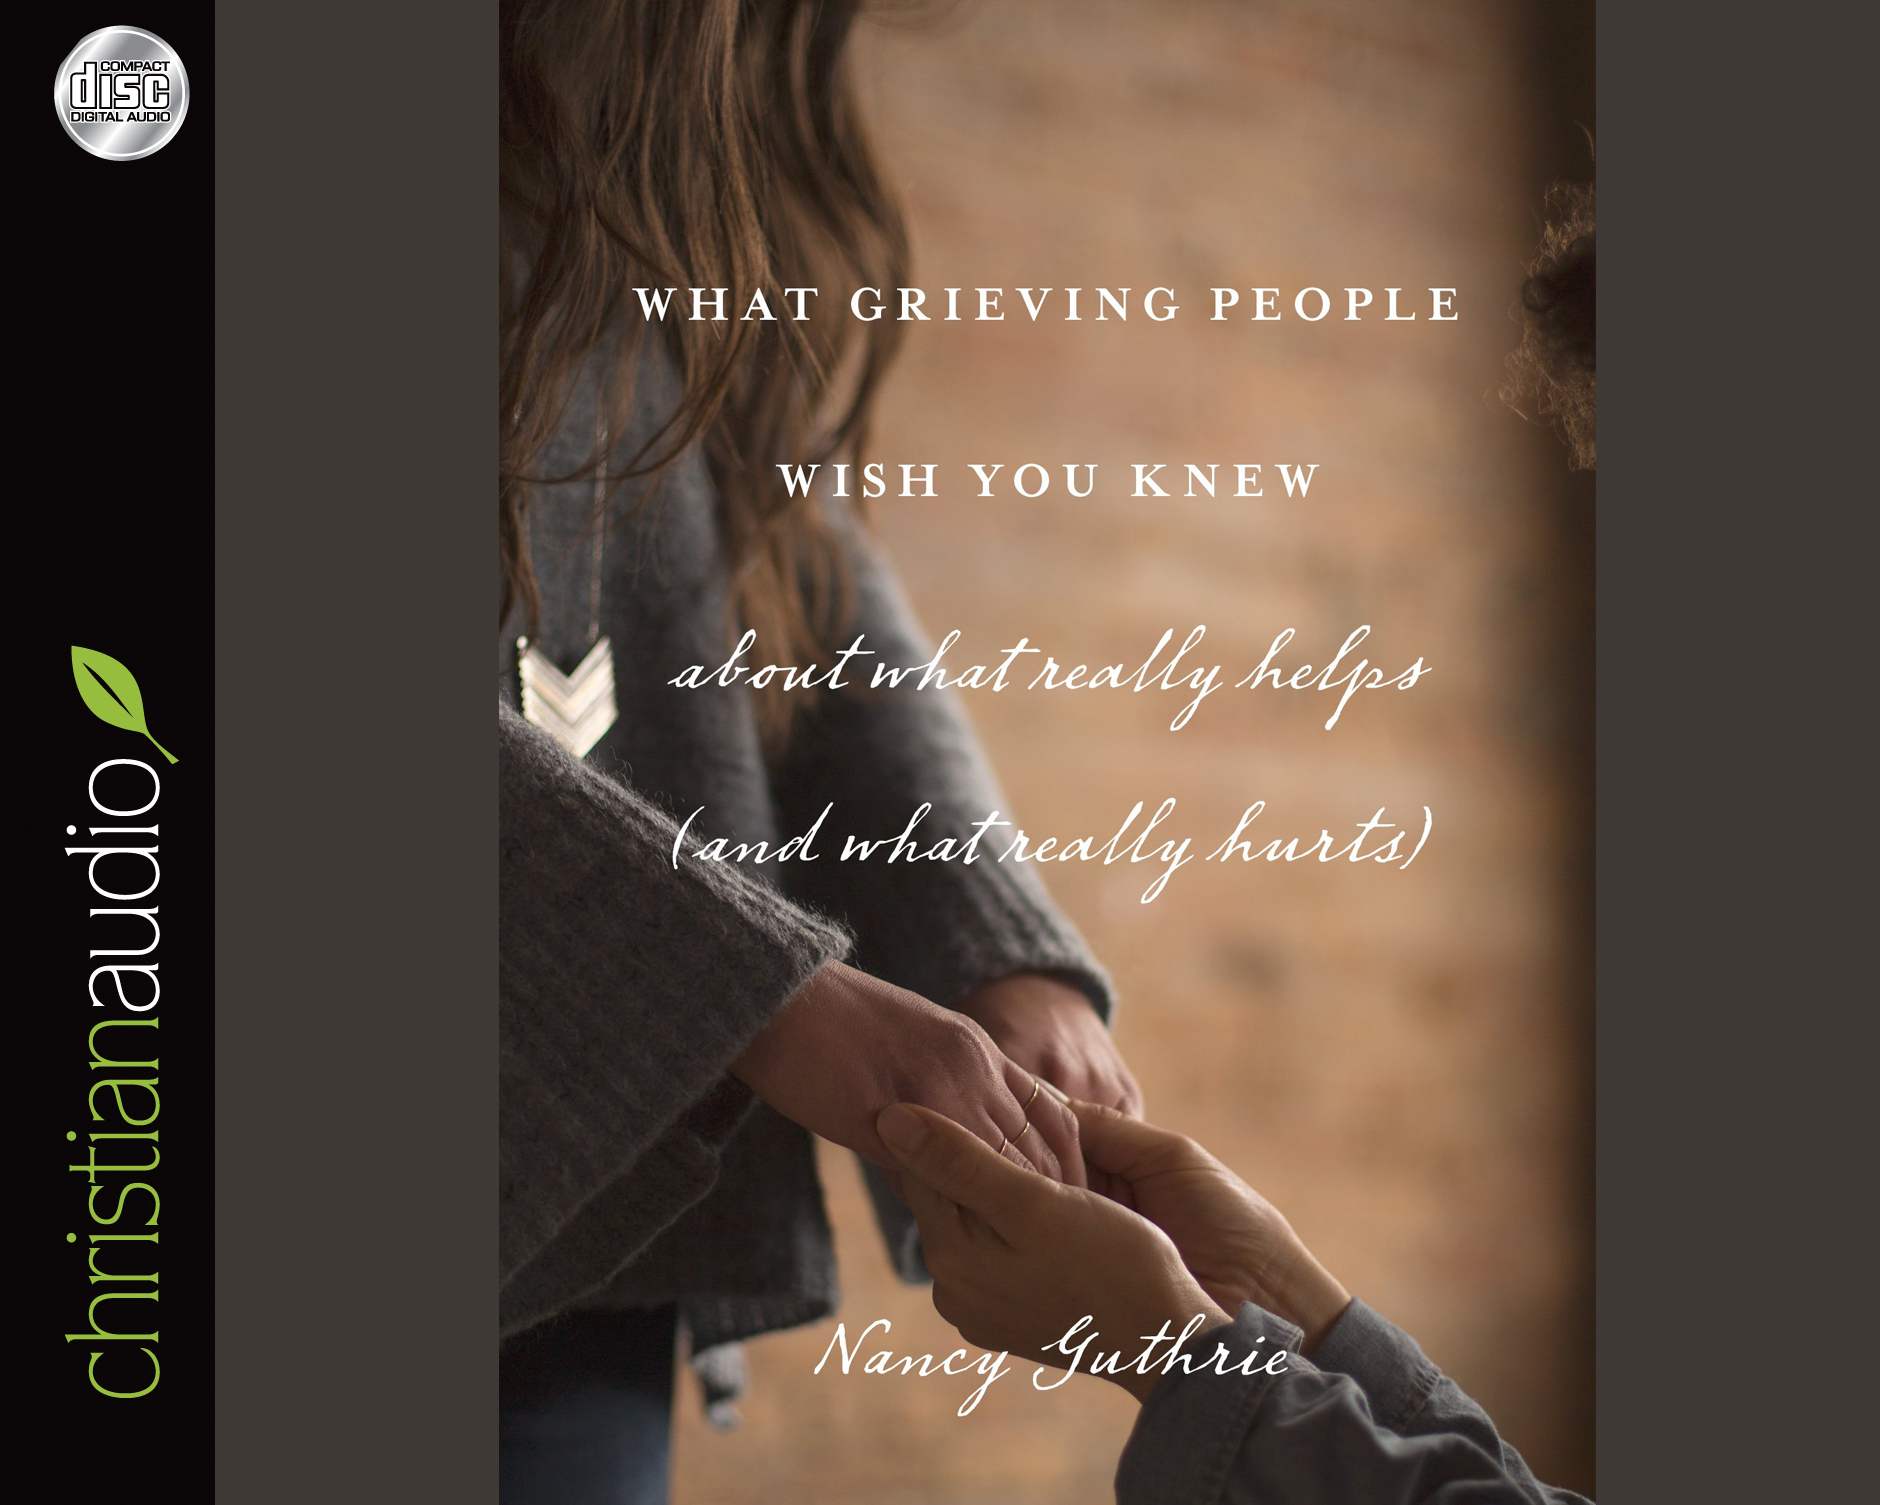 Also available in downloadable audio book from  www.christianaudio.com . Below is a sample of the audio.